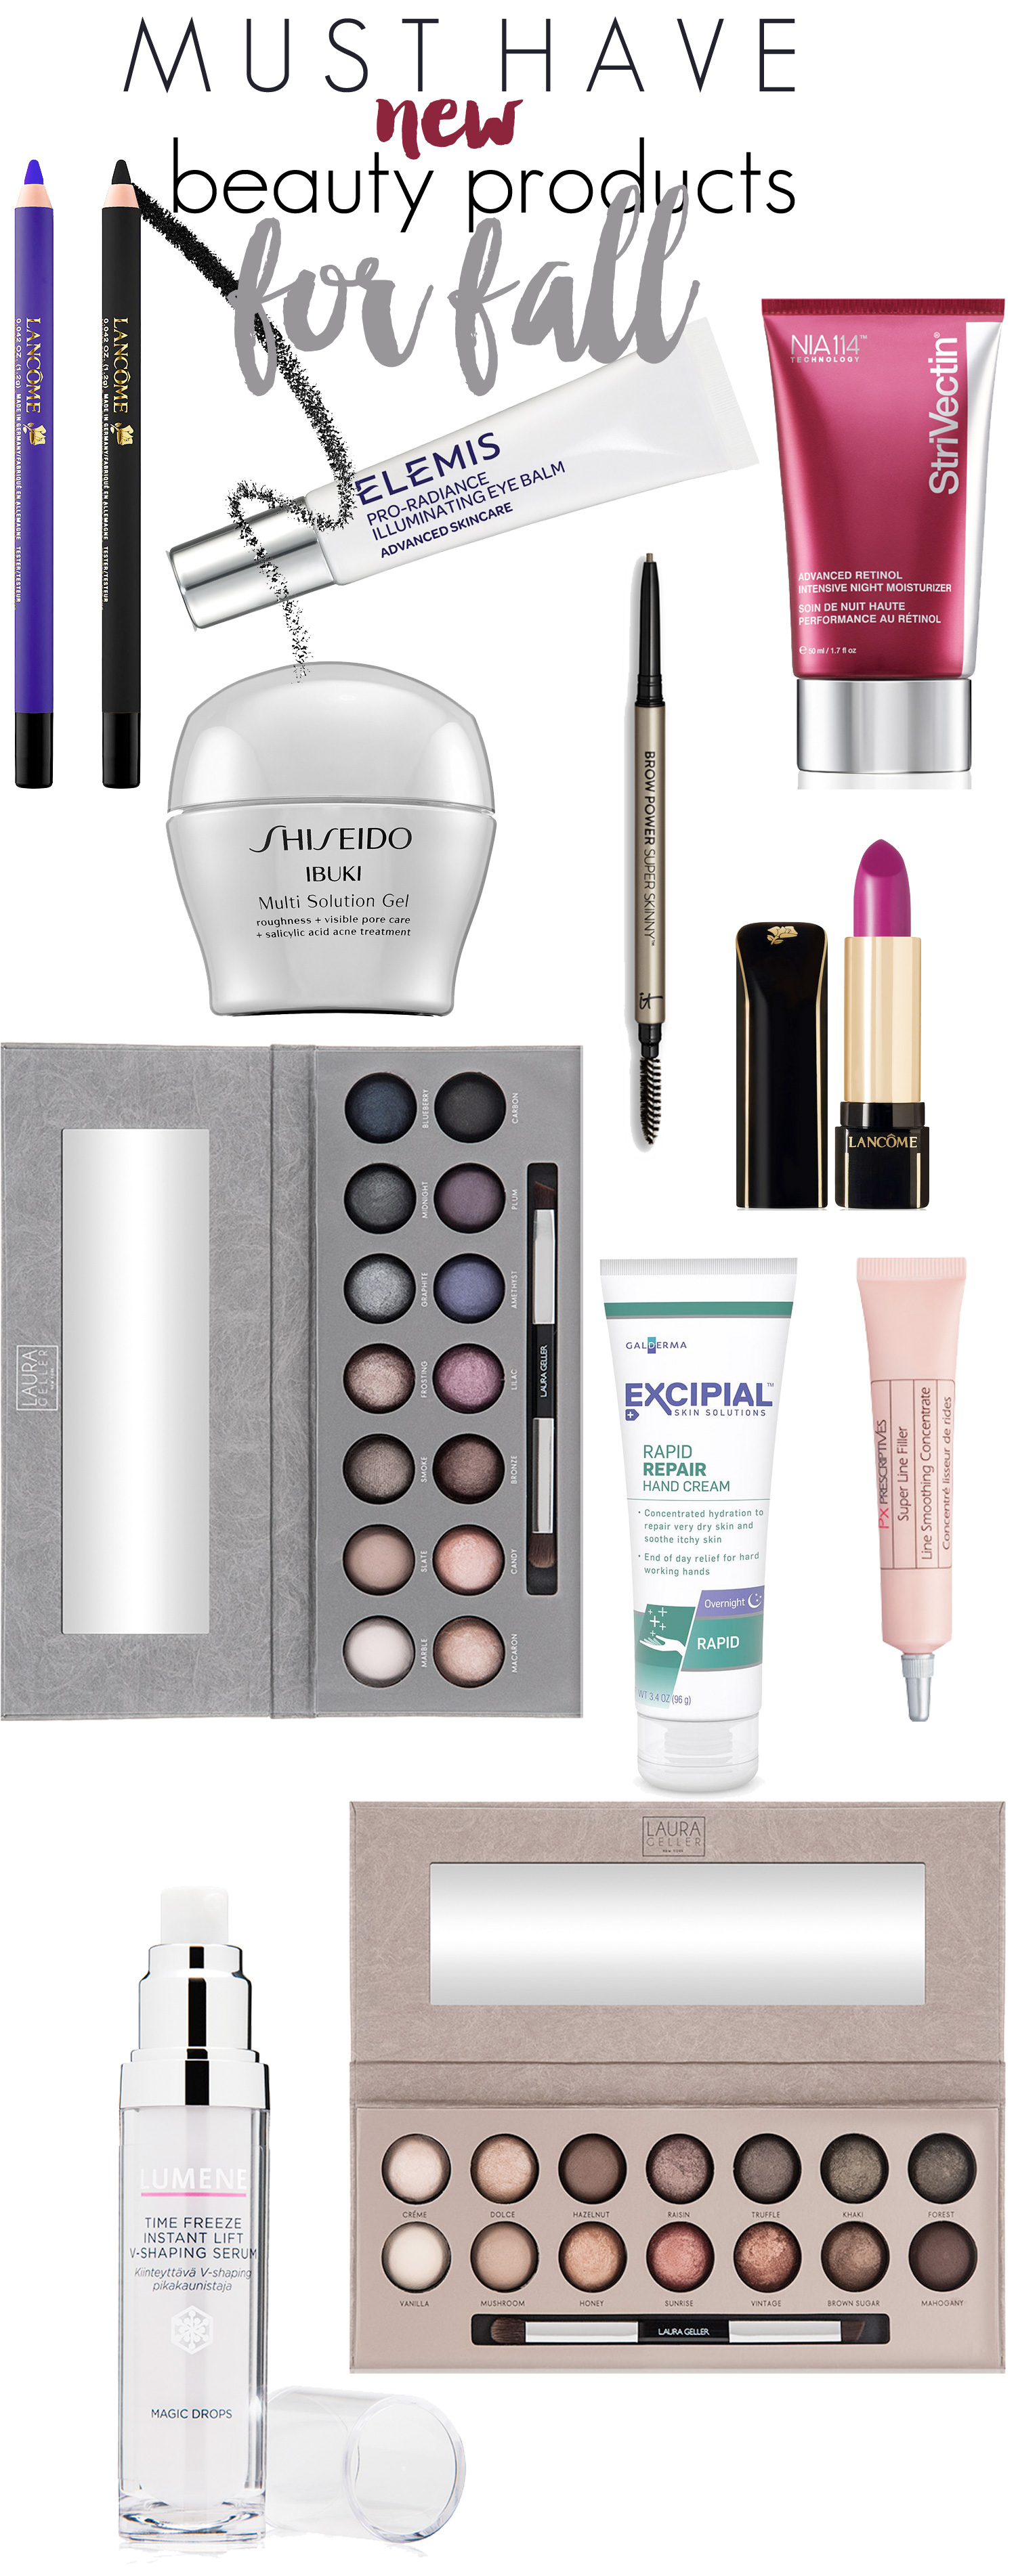 Must Have New Beauty Products for Fall